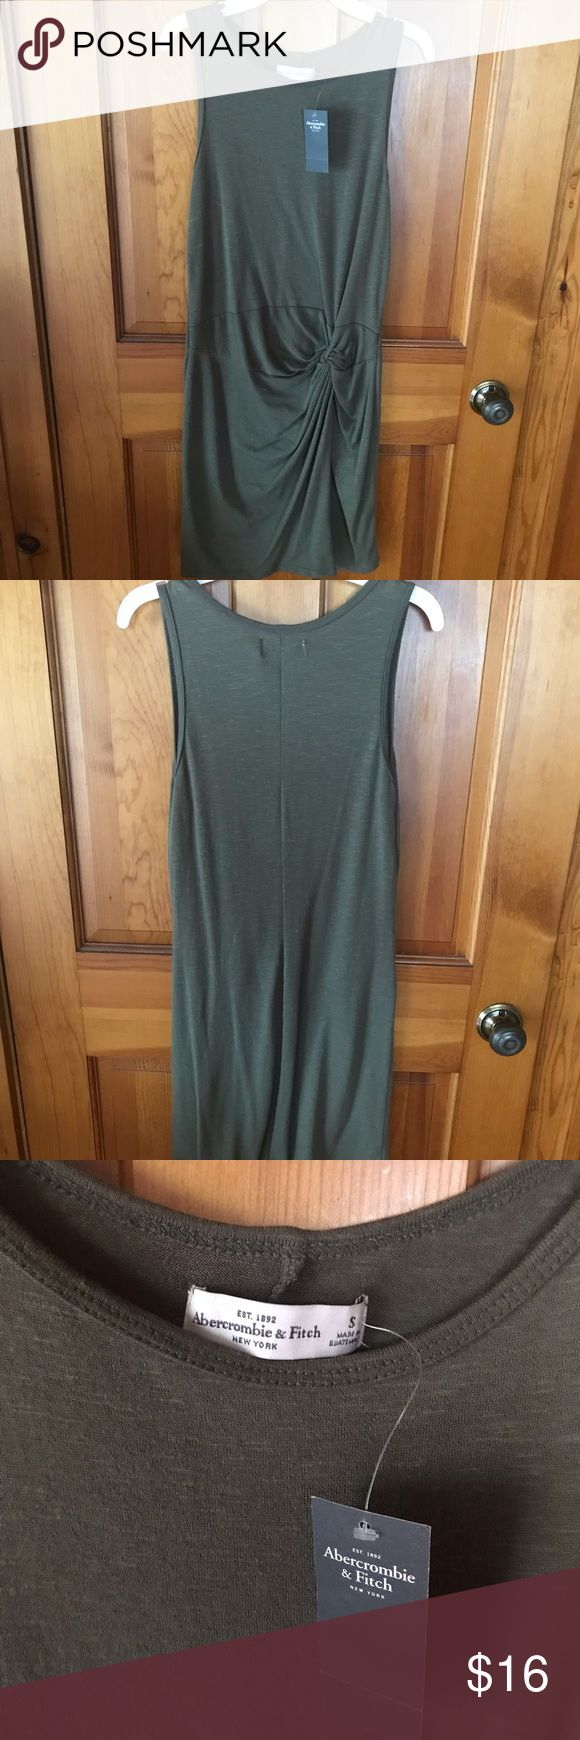 Abercrombie and Fitch tight knot dress Green dress, can dress up or down, never …